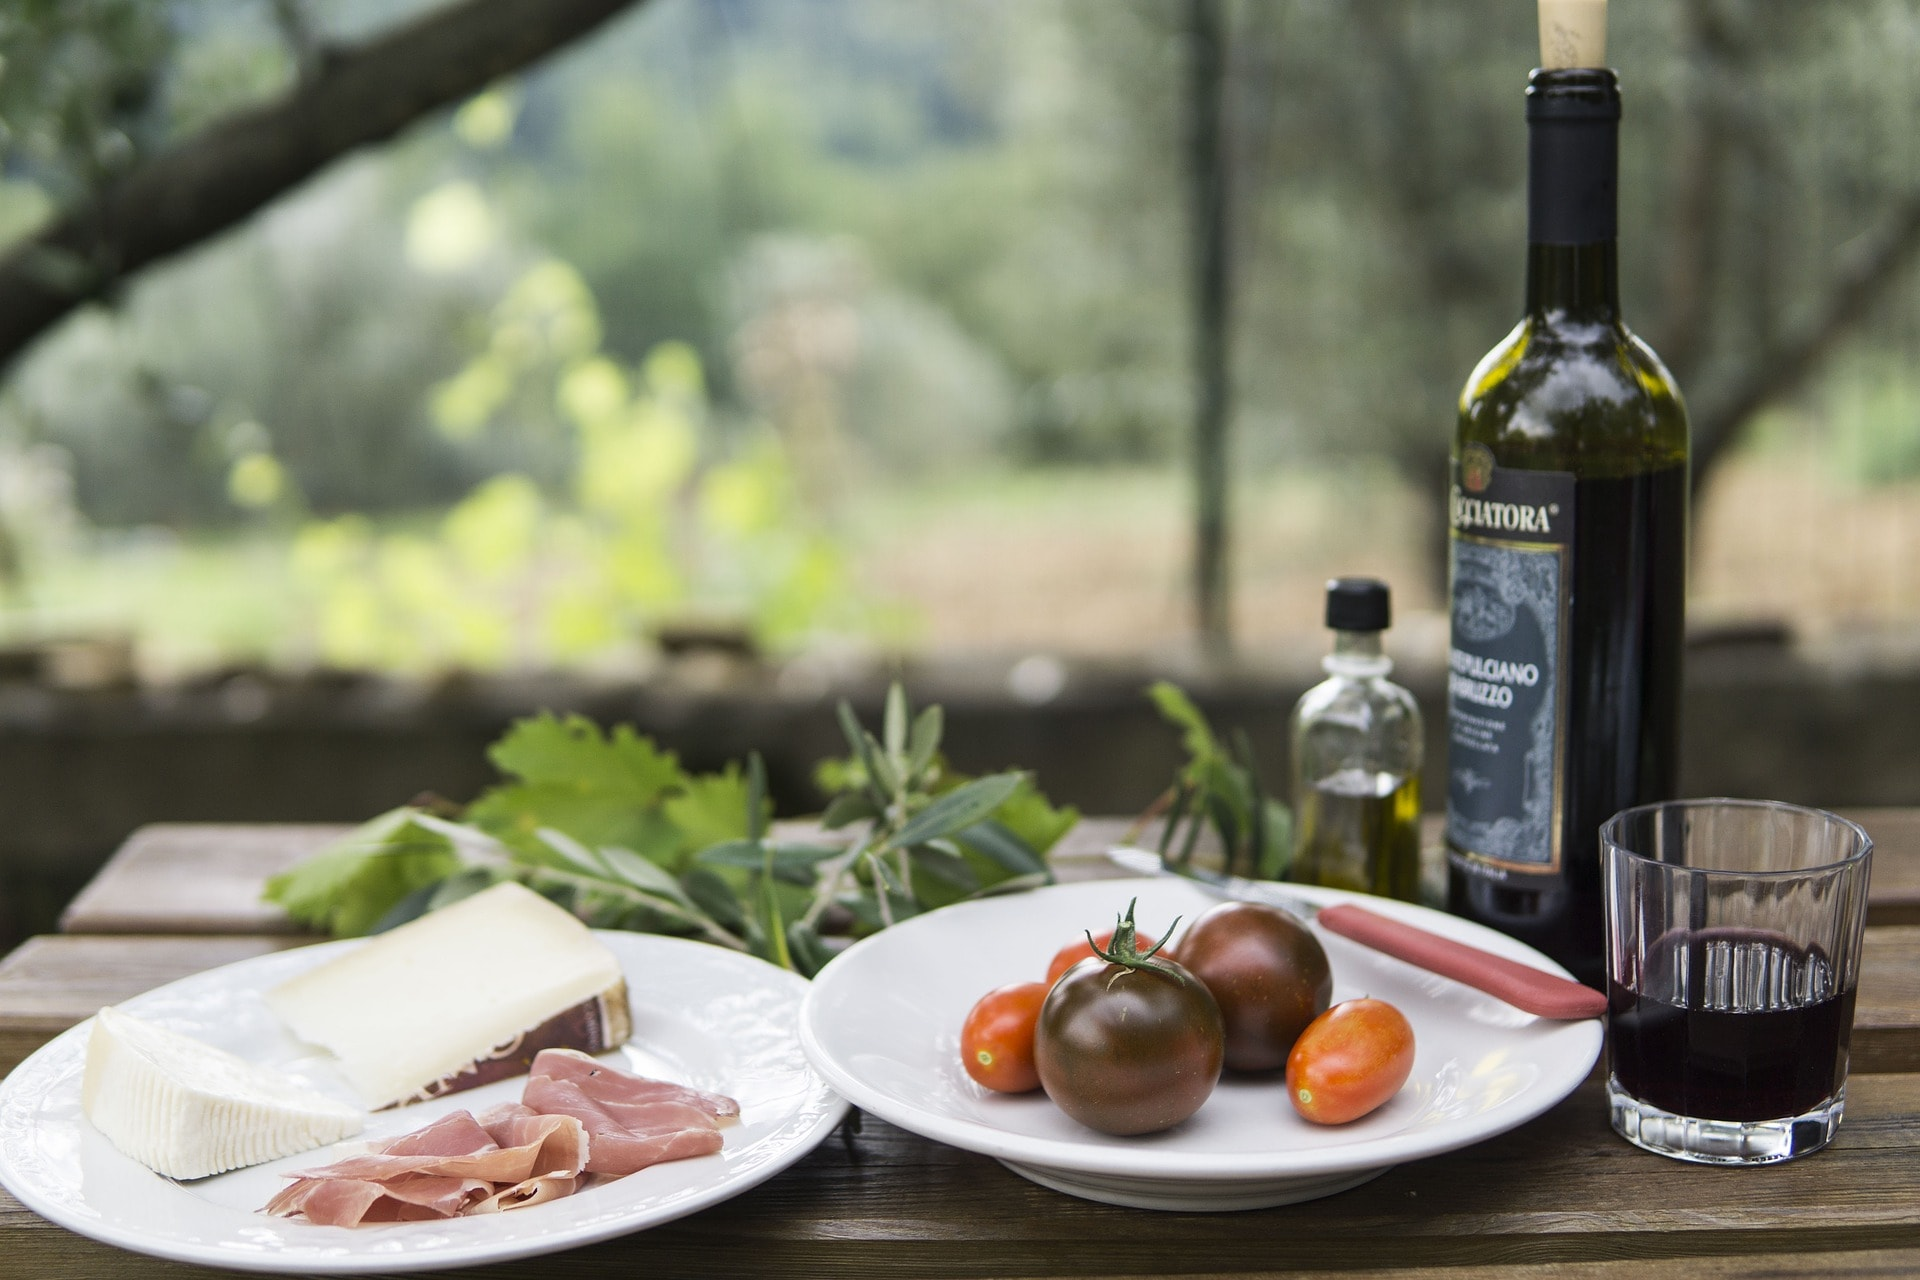 wine and cheese for picnic